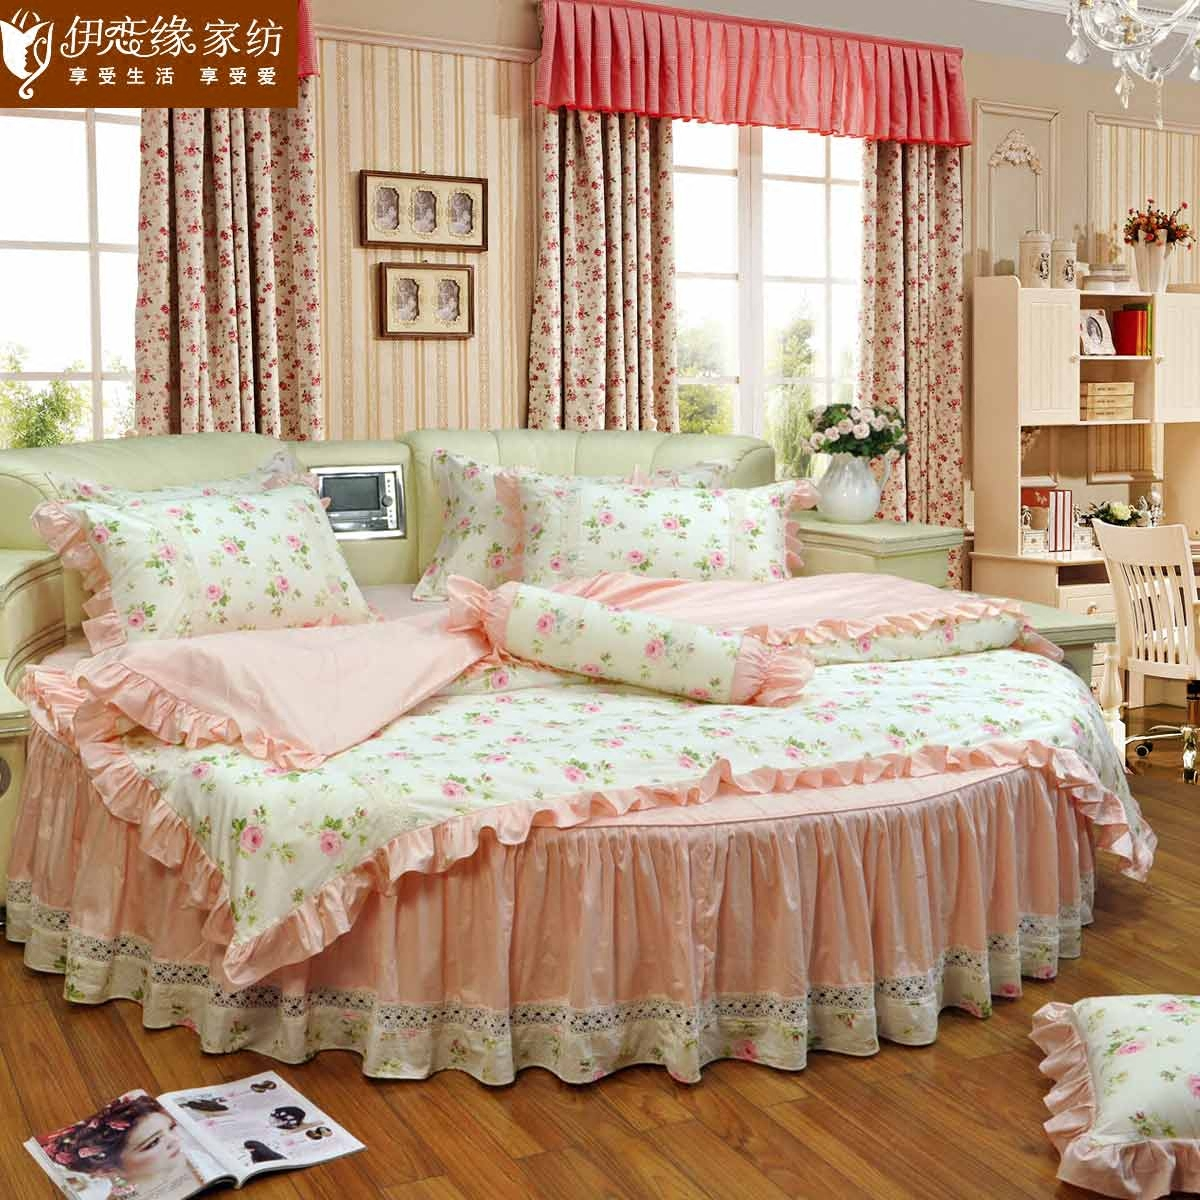 Love iraqi edge cotton round bed family of four ladies pastoral lace bedspread bed skirt round custom garden country